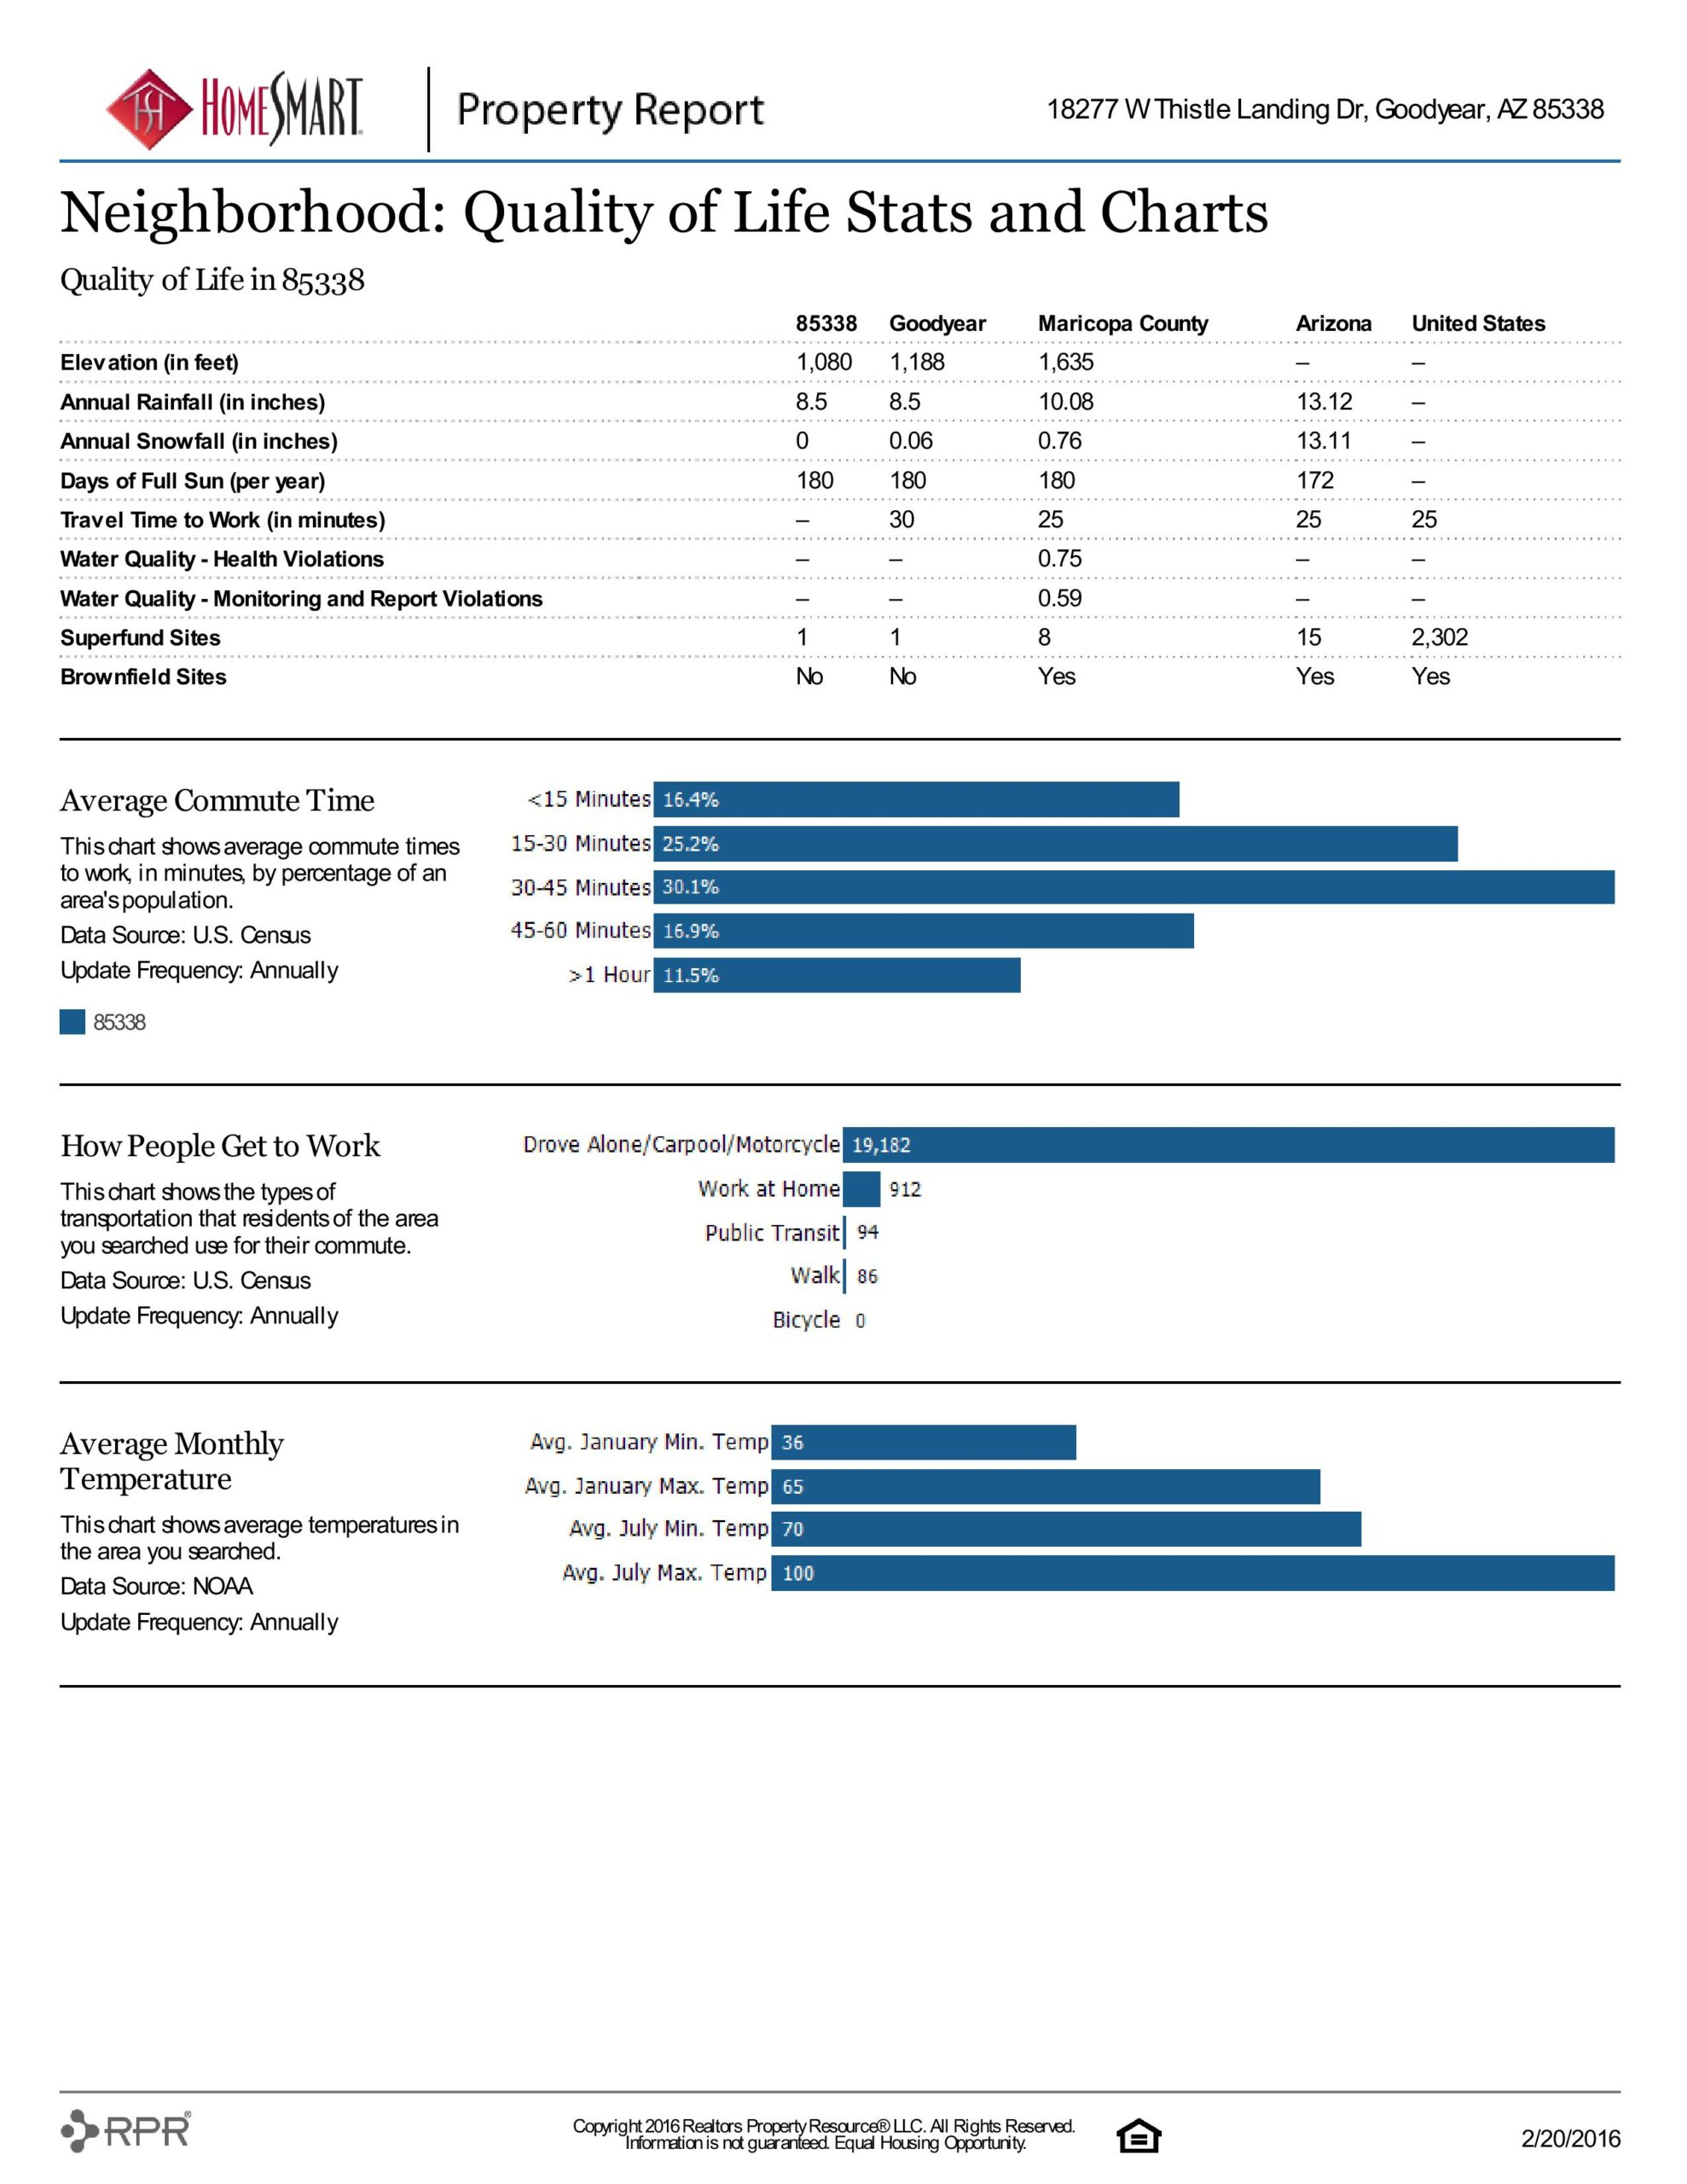 18277 W THISTLE LANDING DR PROPERTY REPORT-page-021